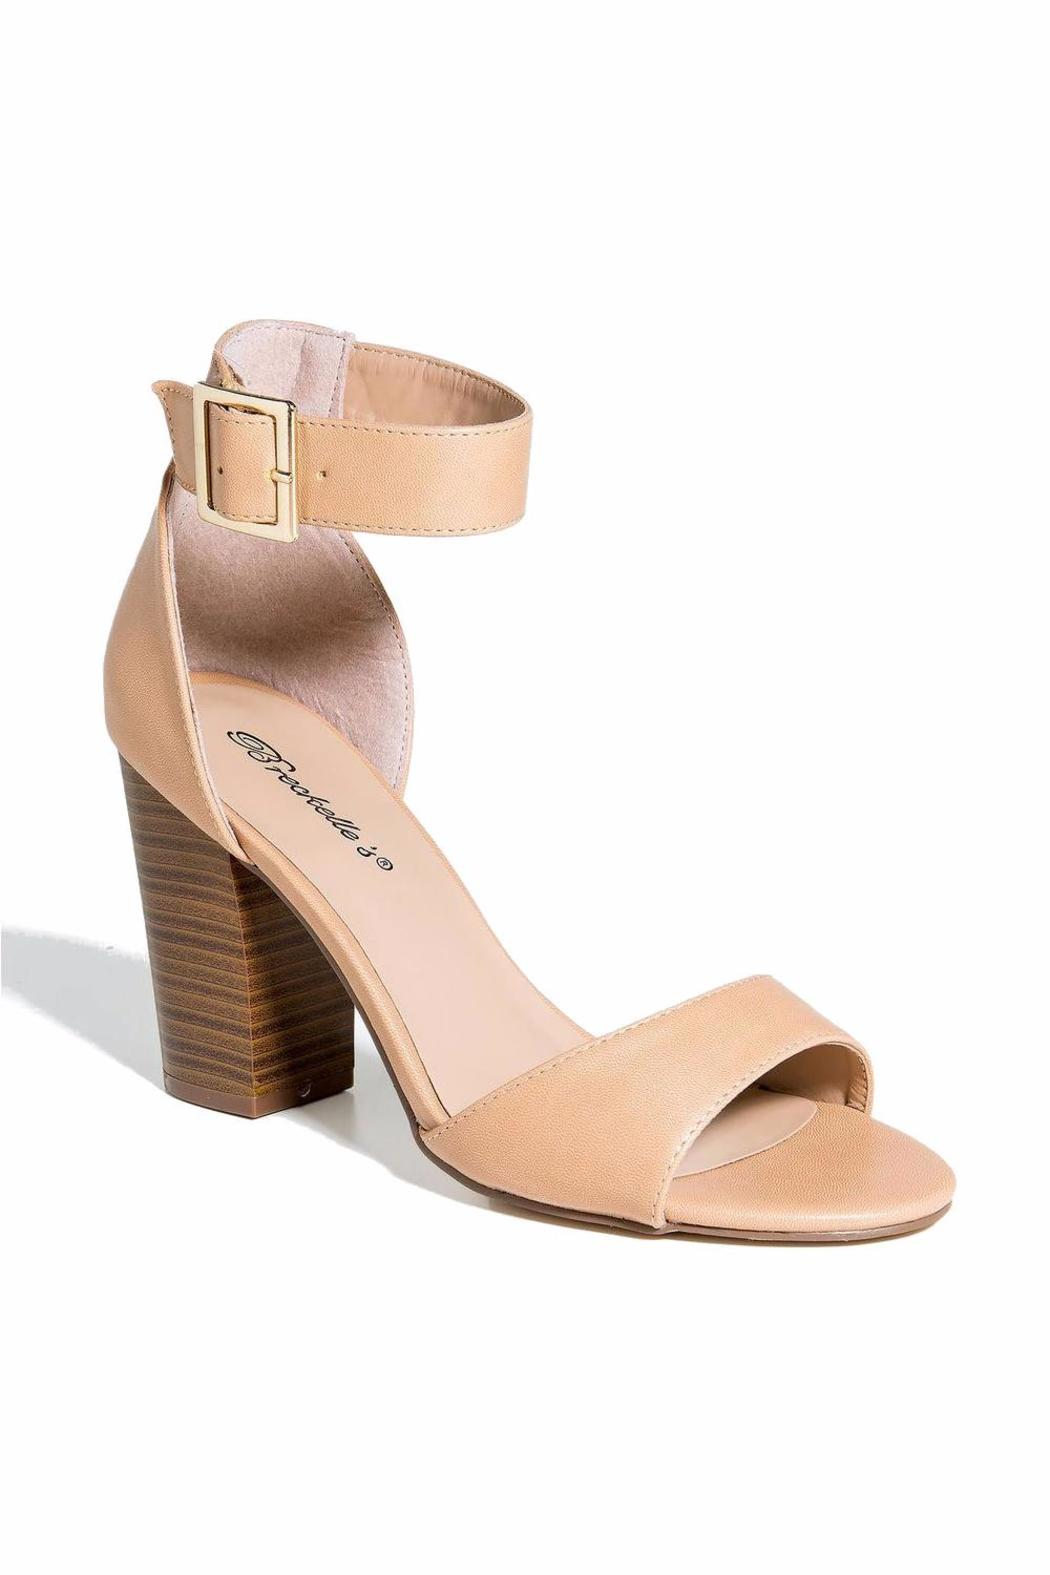 Breckelle's Ankle Strap-Chunky Heel - Front Full Image